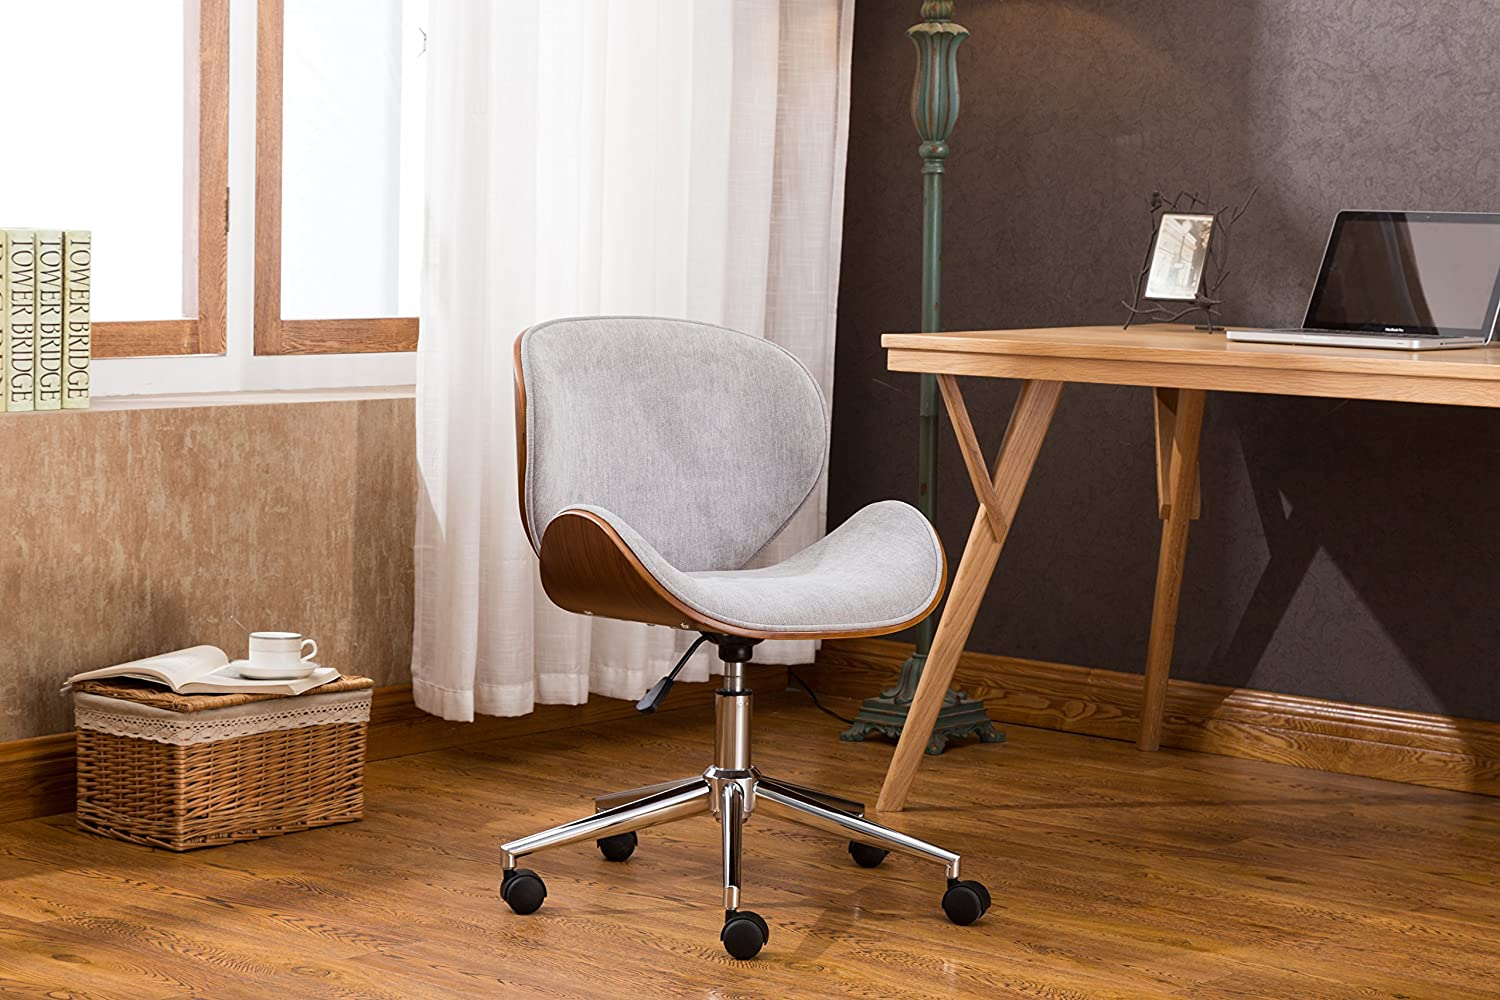 Amazon Com Porthos Home Branson Mid Century Style Office Chairs With Fabric Upholstery Adjustable Height 360 Swivel And Stainless Steel Legs Gray Furniture Decor